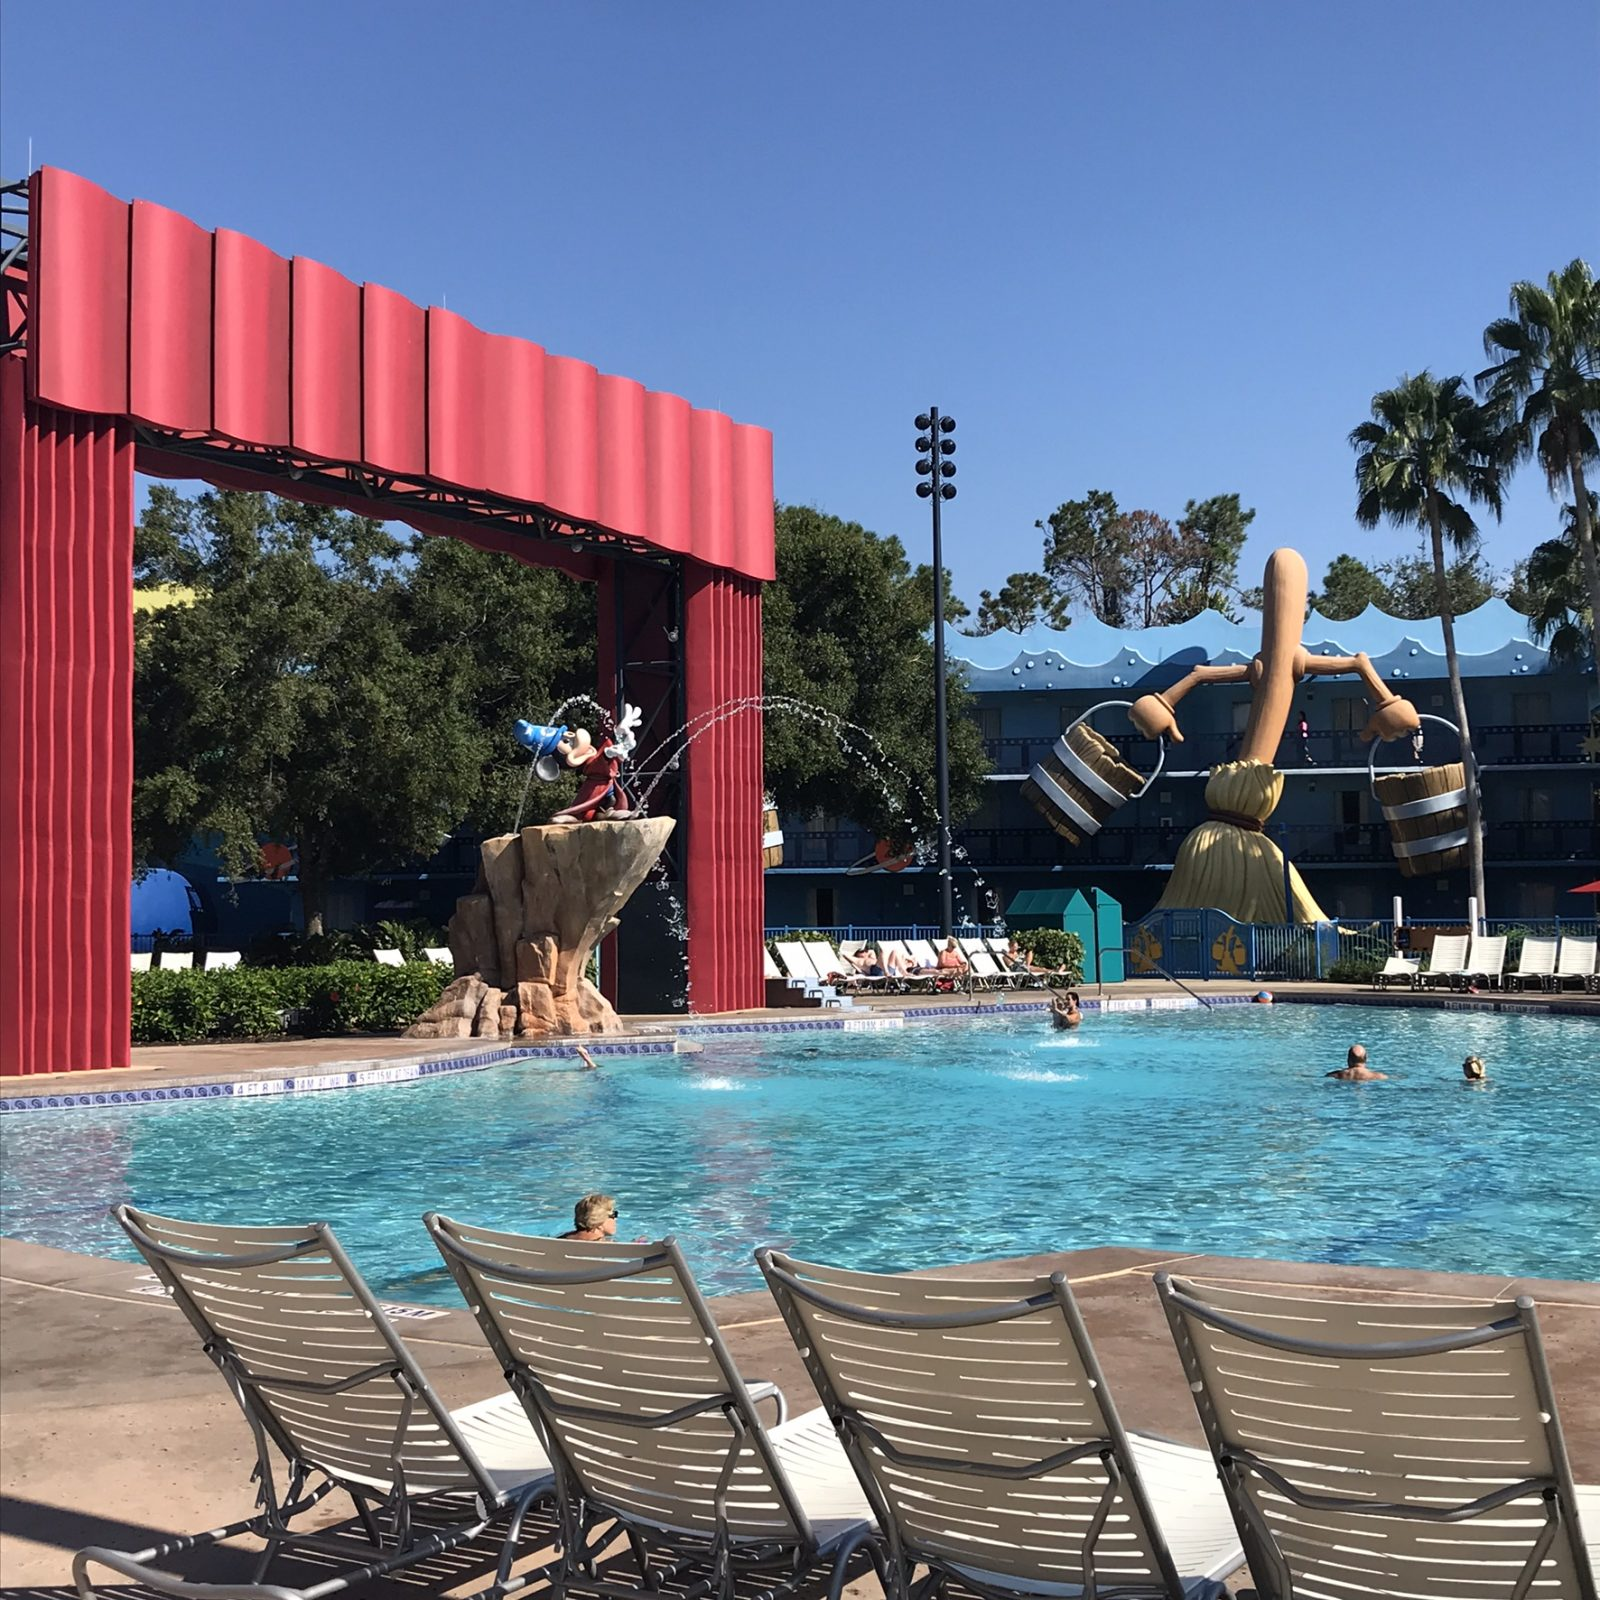 How to use Orbitz promo codes to save on Disney World hotels! Orbitz can help you do Disney World on a budget. Get my tips and tricks for Orbitz Disney World hacks on The Budget Mouse!.